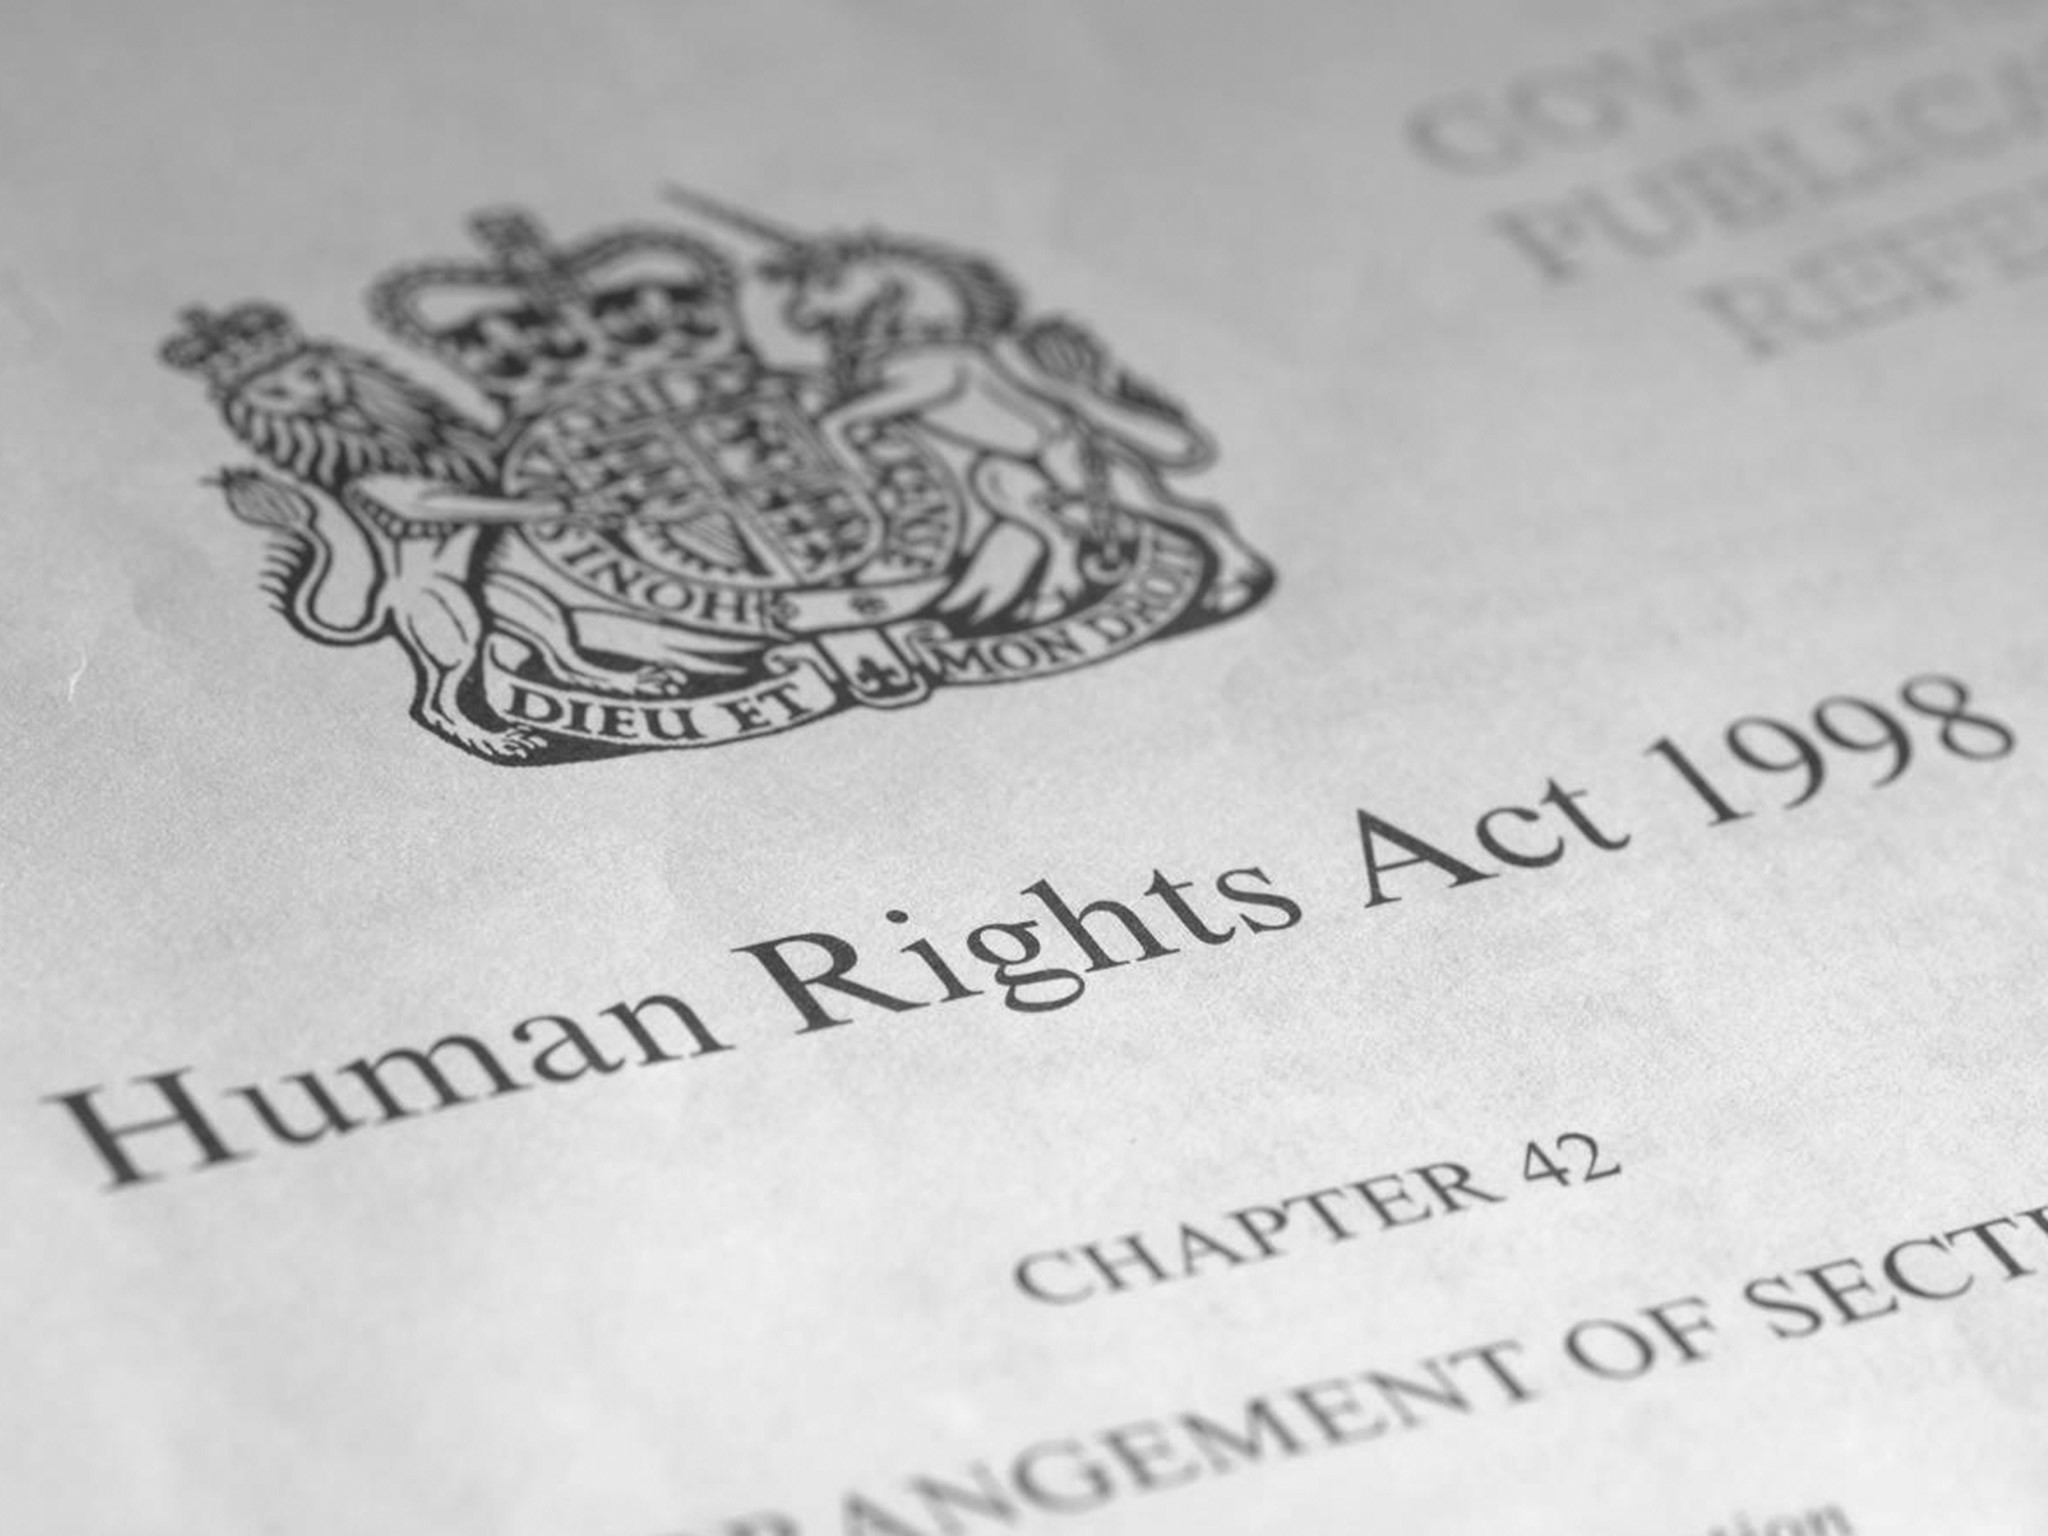 2048x1536 At its best, the Government's plan to scrap the Human Rights Act is empty  pandering to xenophobia | The Independent